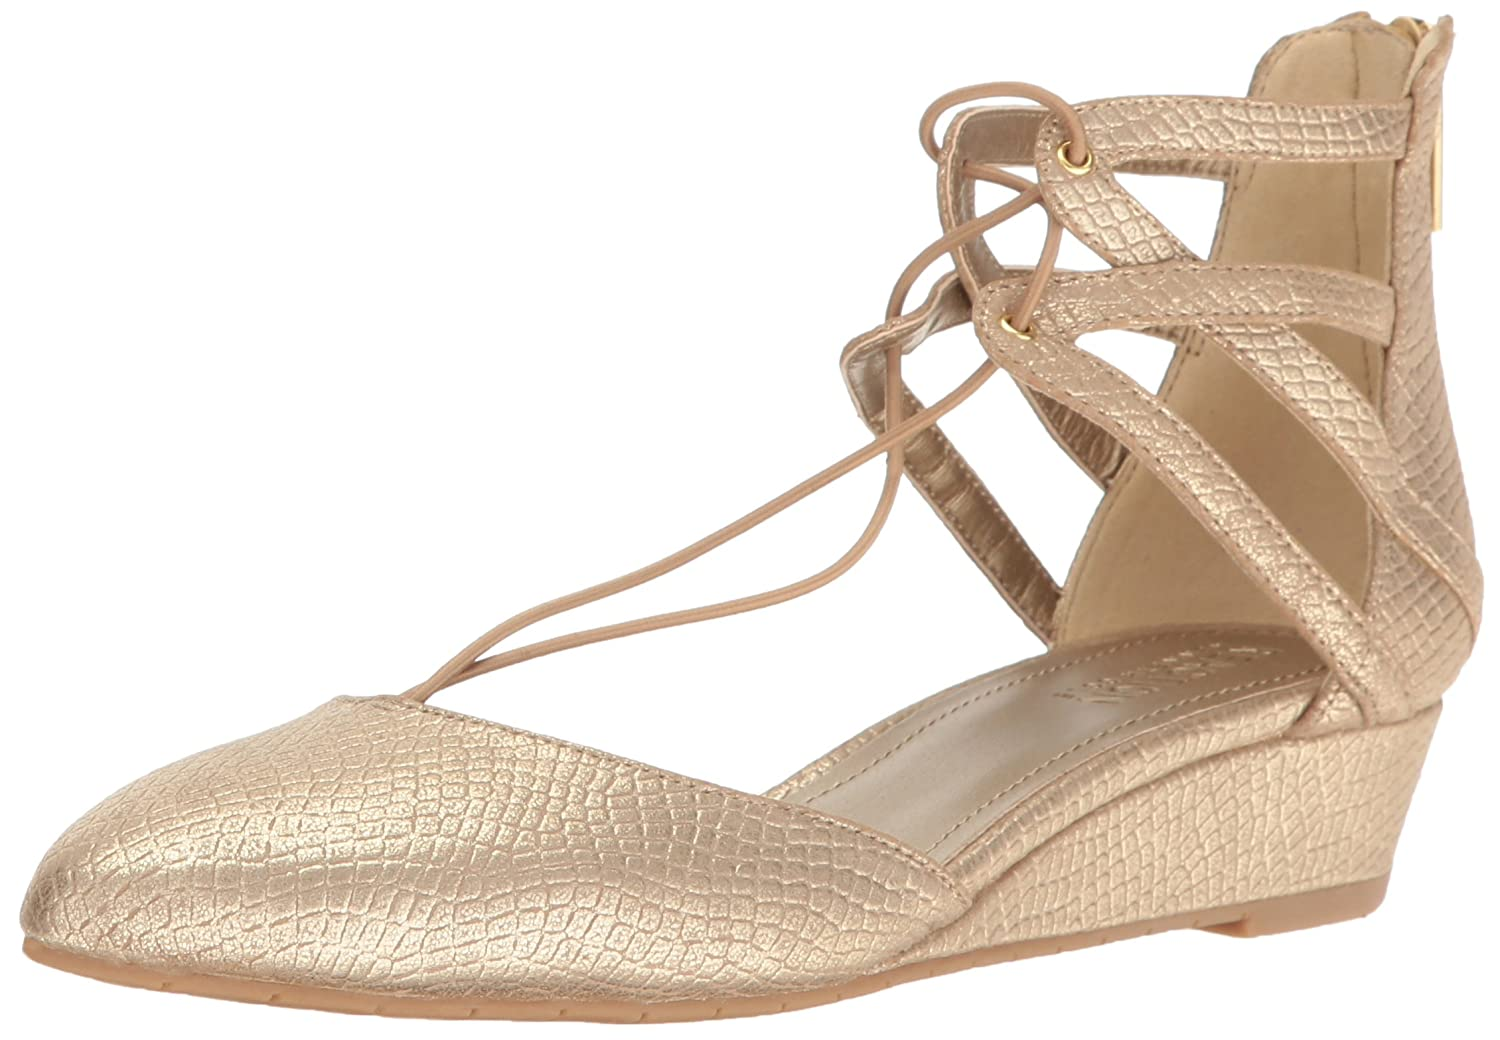 Kenneth Cole REACTION Women's Why Not Pointed Toe Flat B01LBCWNZK 5 B(M) US|Gold